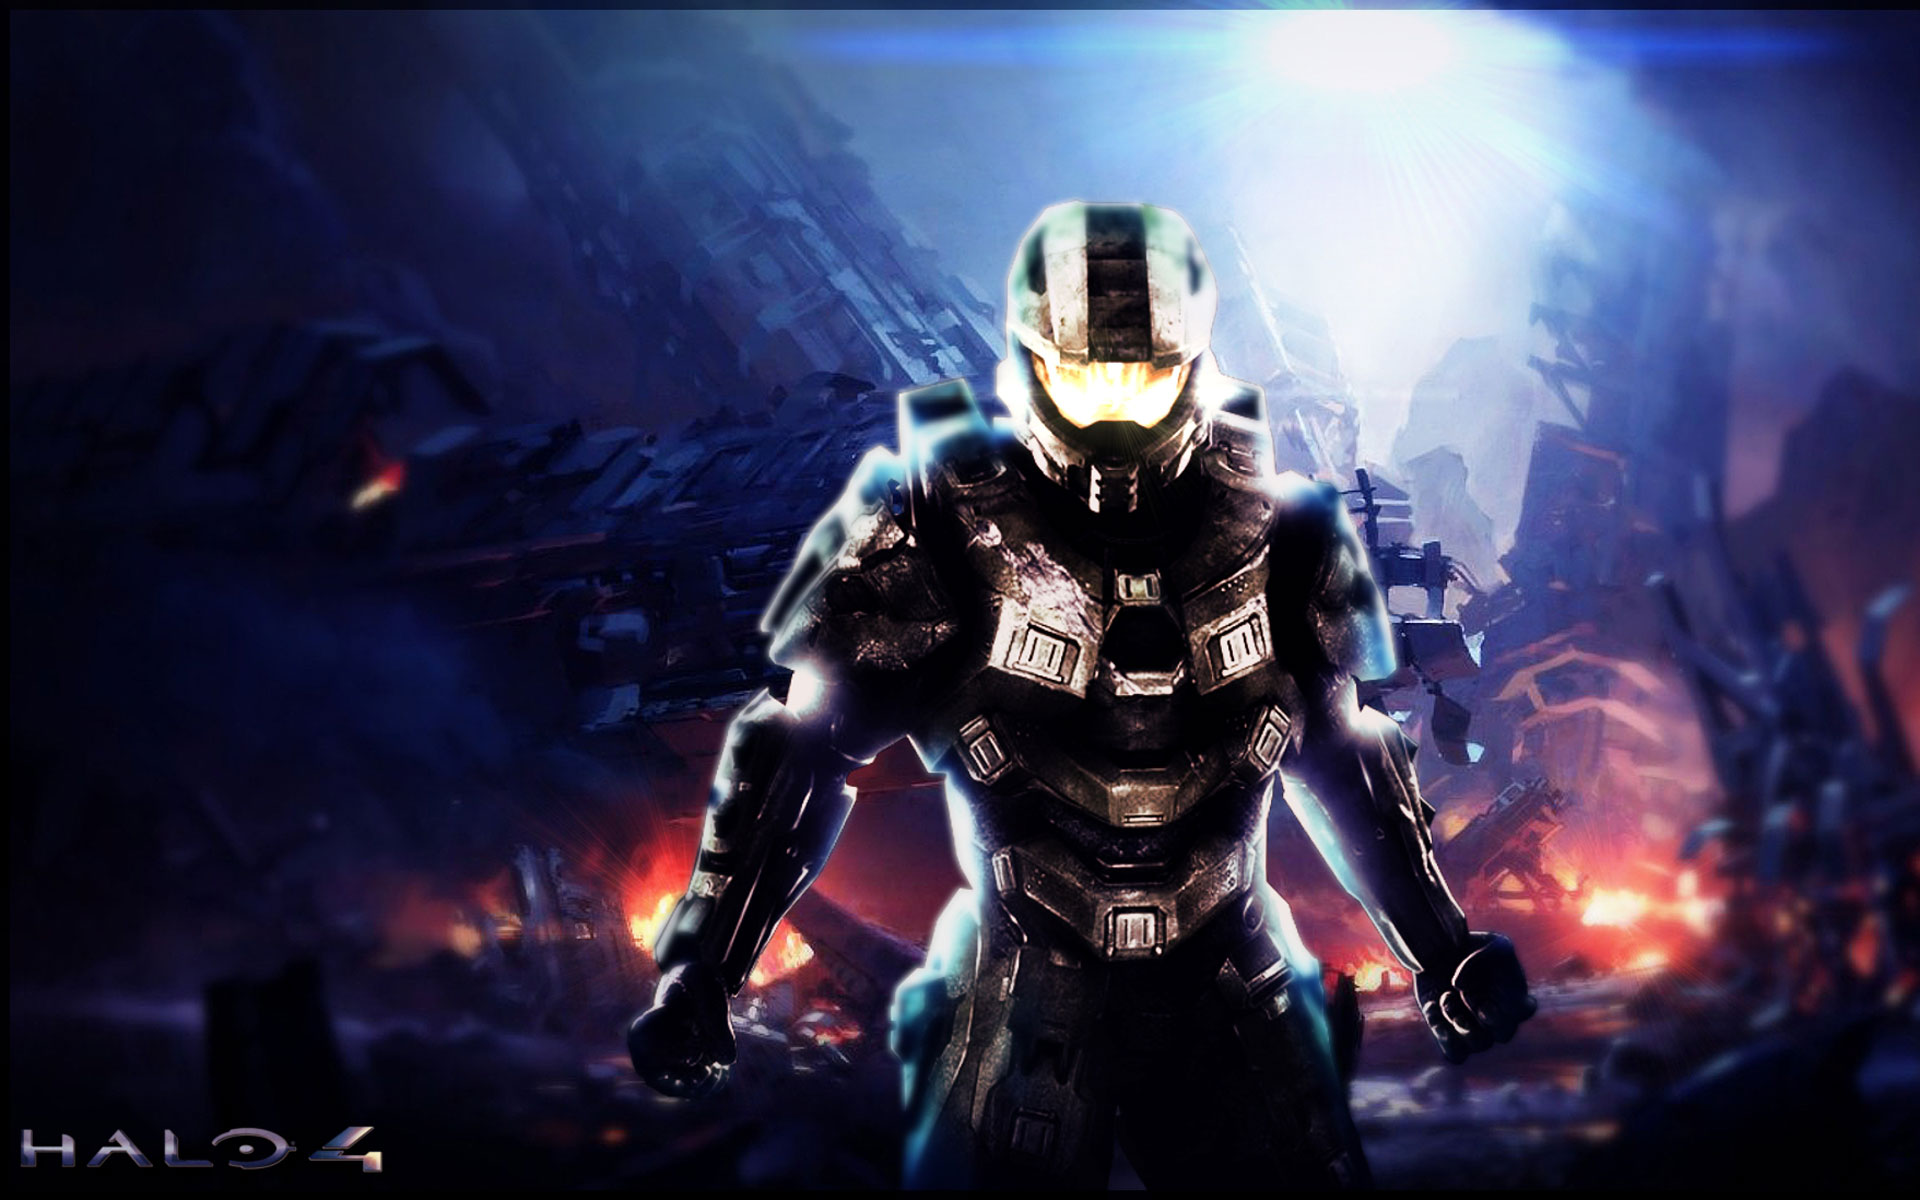 Halo-Video-Games-HD-Download-http-wallucky-com-halo-video-games-hd-dow-wallpaper-wp3806196